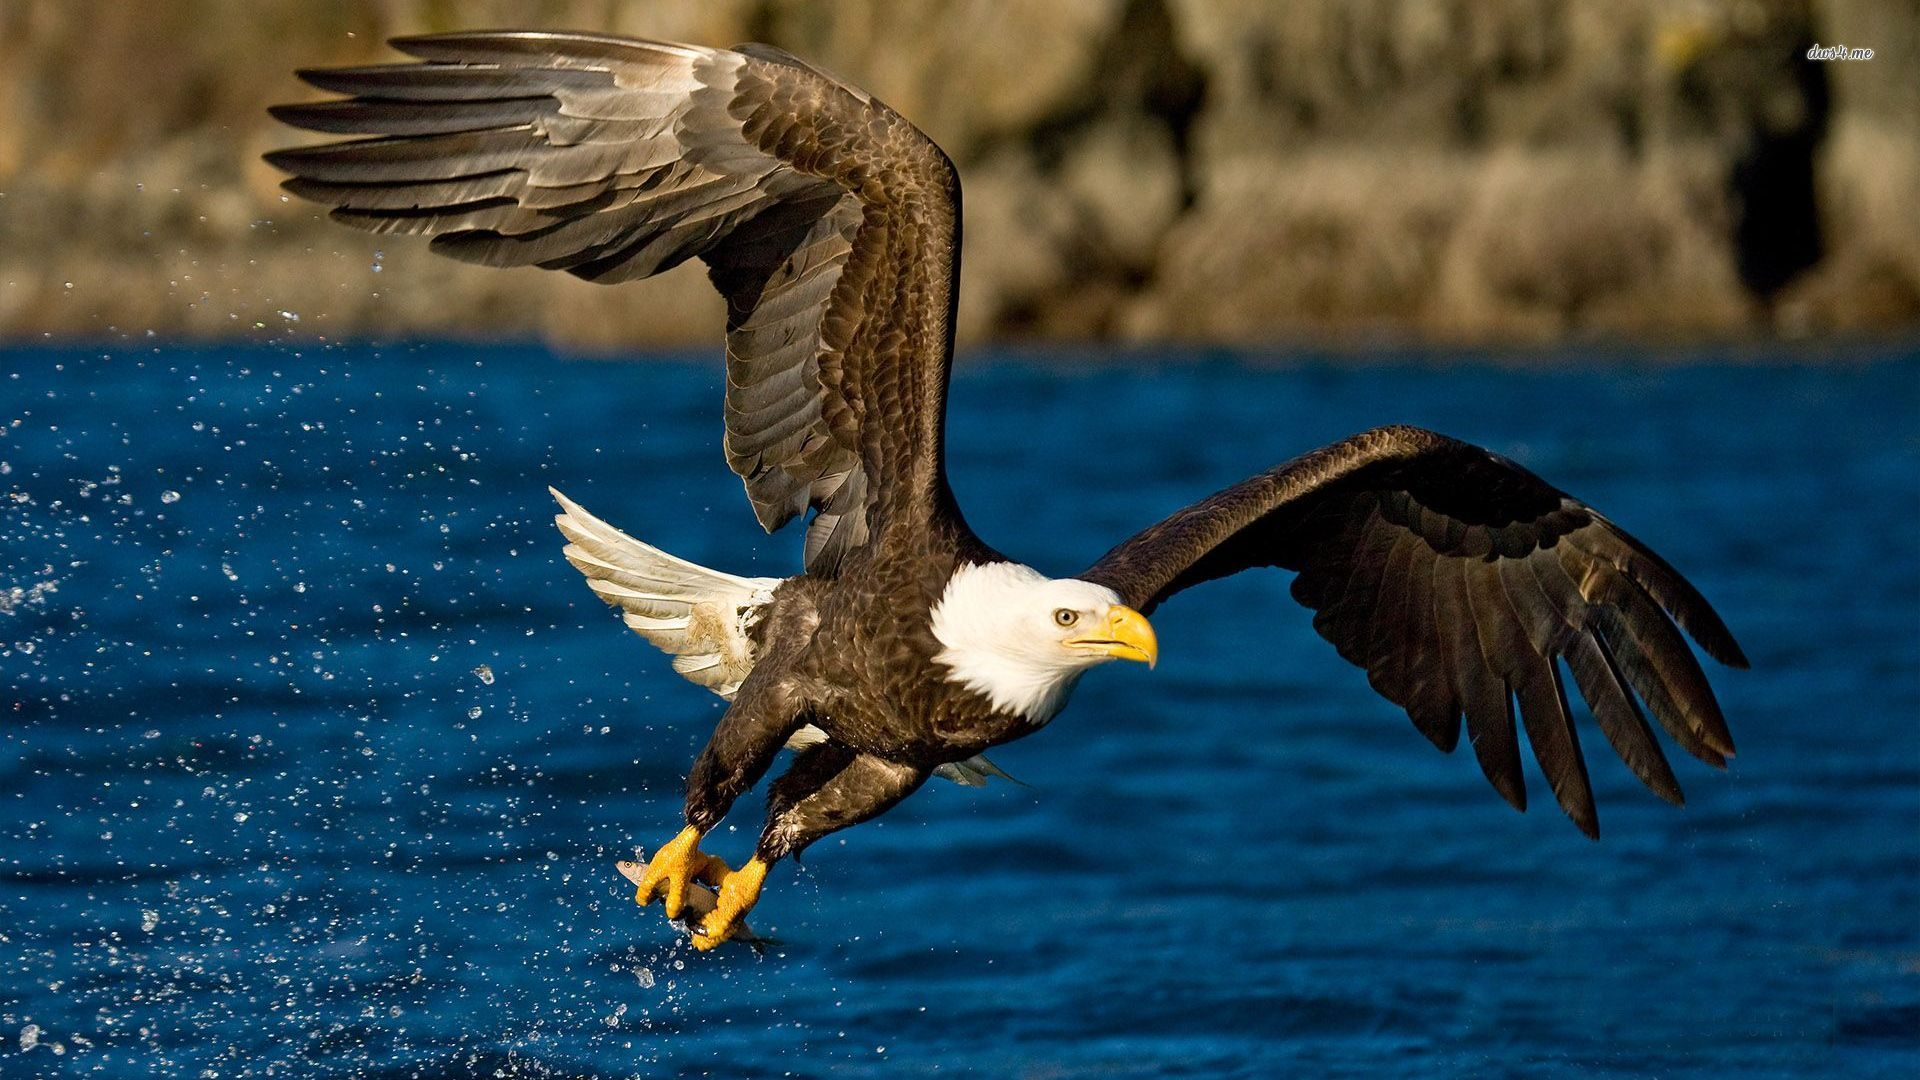 1920x1080 Eagle Hd Animal Wallpapers Wallpapers Smajliji Com